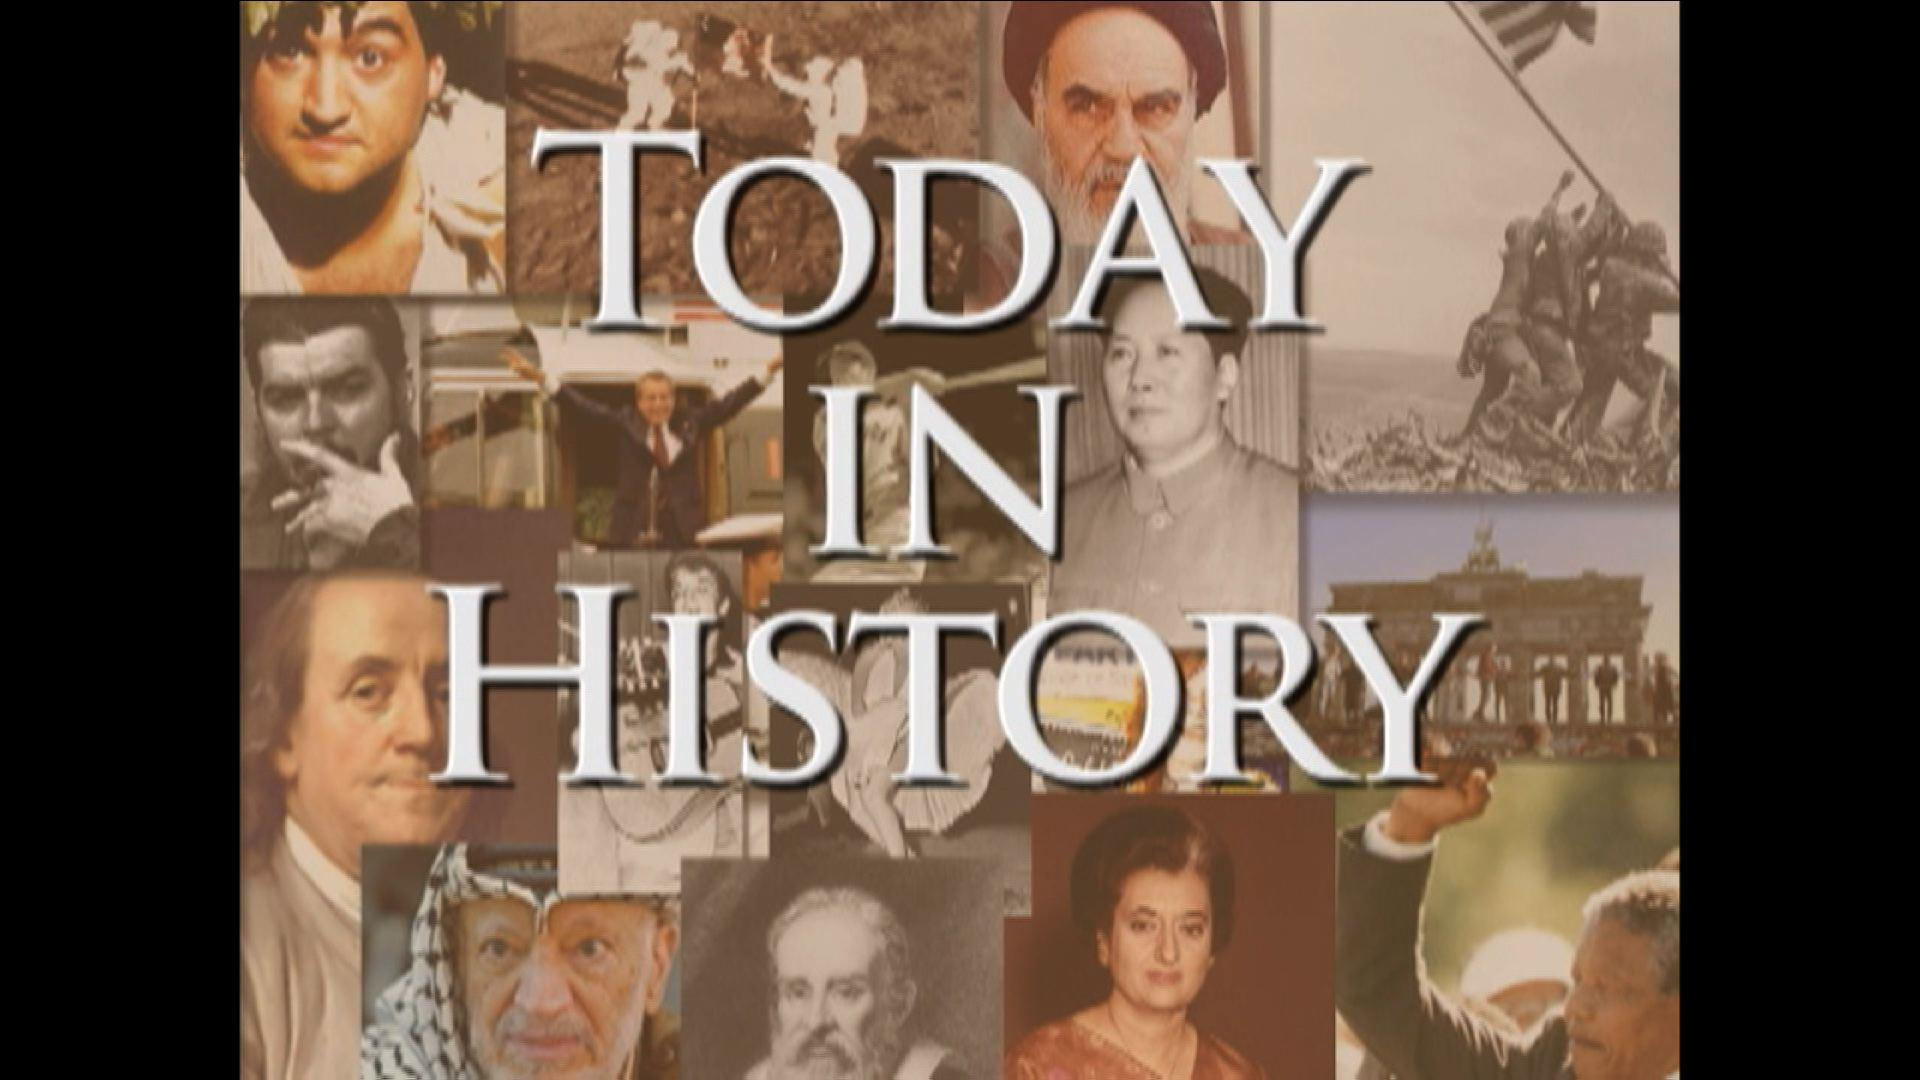 Today in History for May 2nd